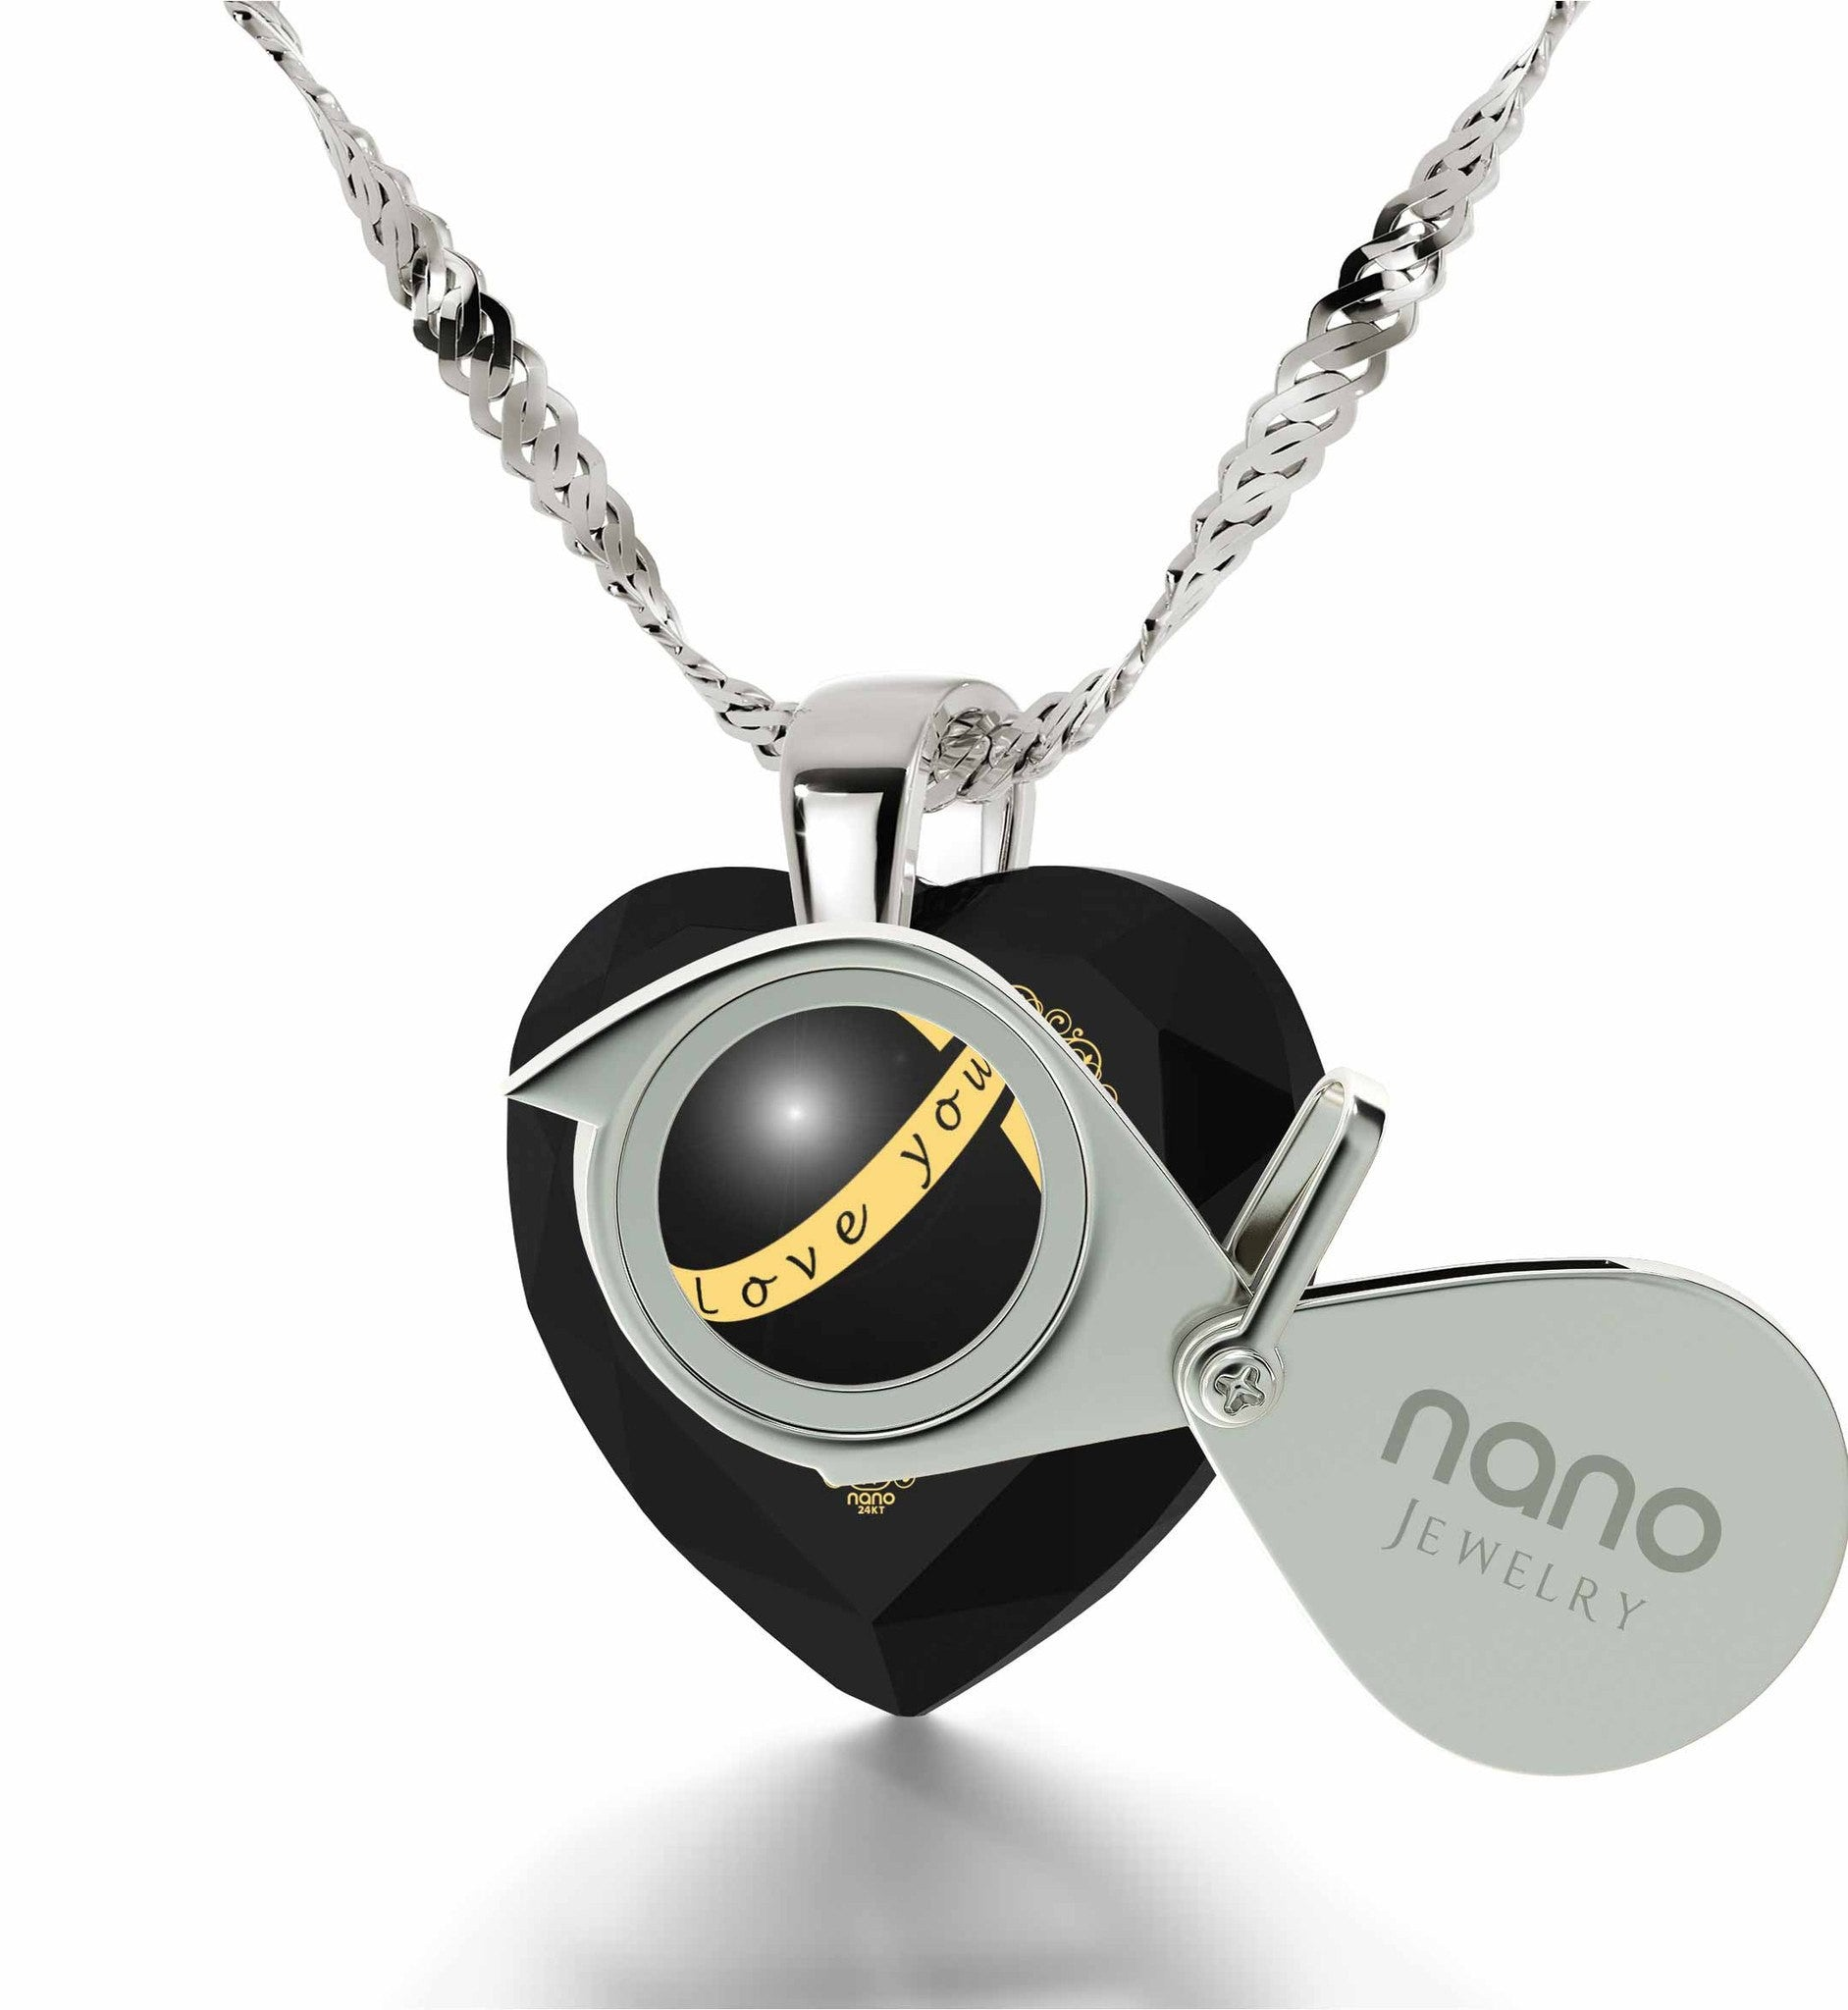 """Top Gifts for Wife, Black Heart Stone Engraved Jewelry, What to Buy Your Girlfriend for Christmas"""